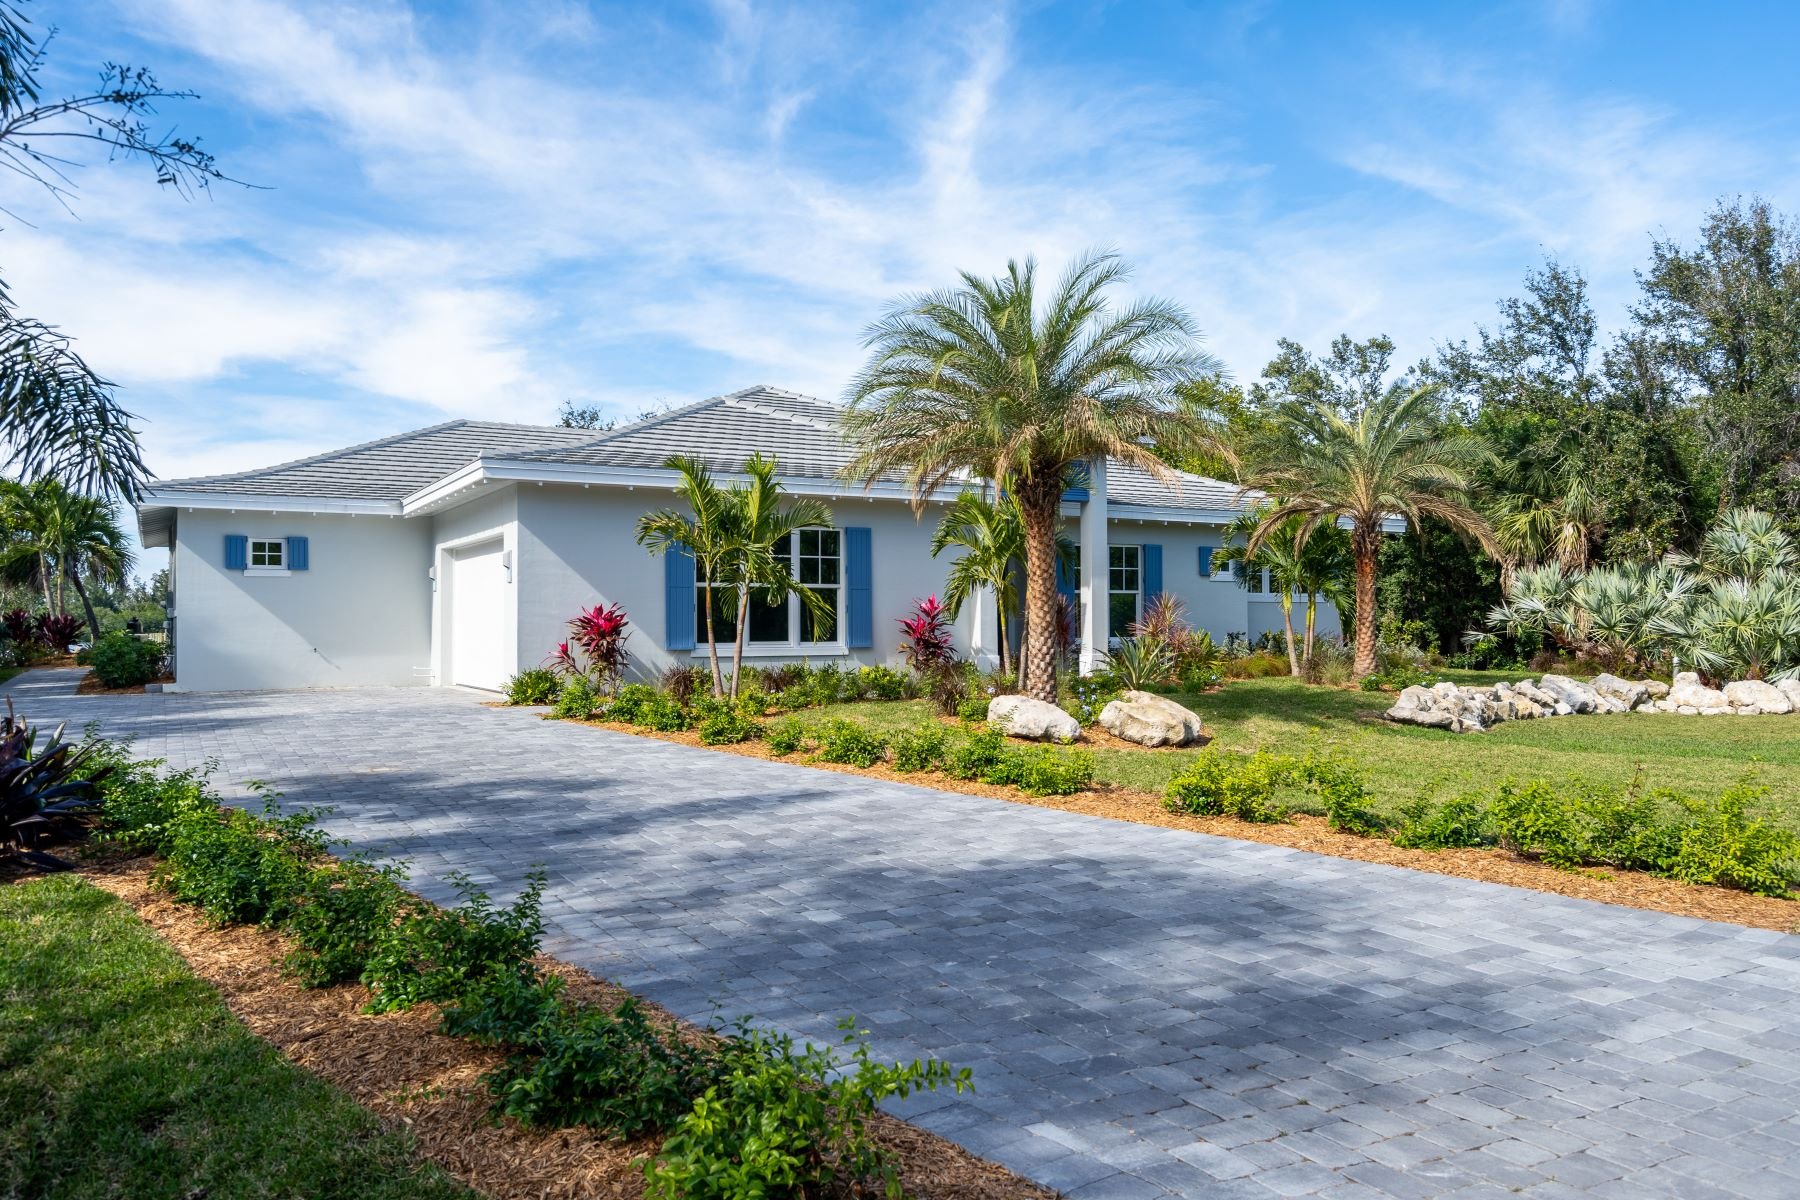 Single Family Homes for Sale at 1409 Old Winter Beach Road Indian River Shores, Florida 32963 United States